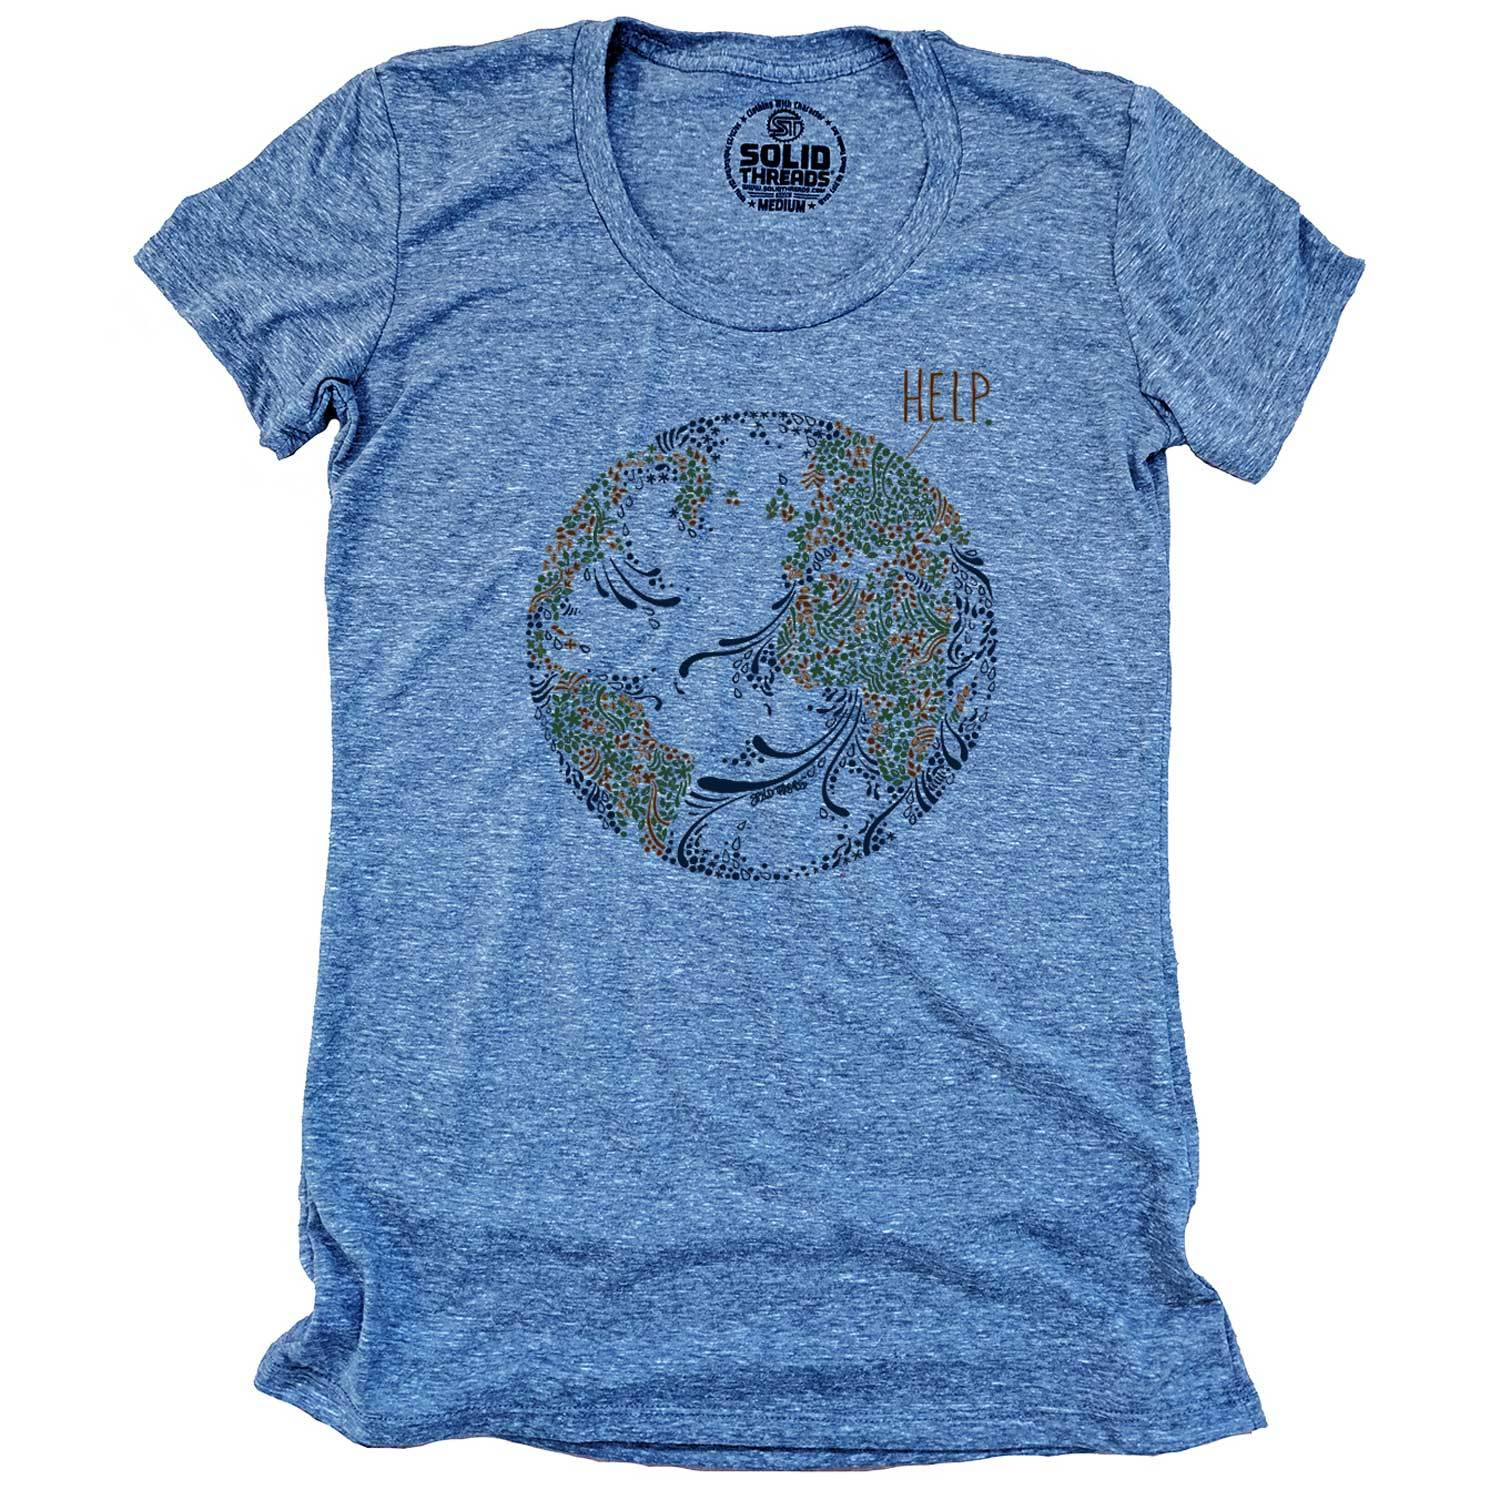 Women's Earth Help Vintage Inspired Scoopneck T-Shirt | Cool Environmentalism Graphic Tee | Solid Threads